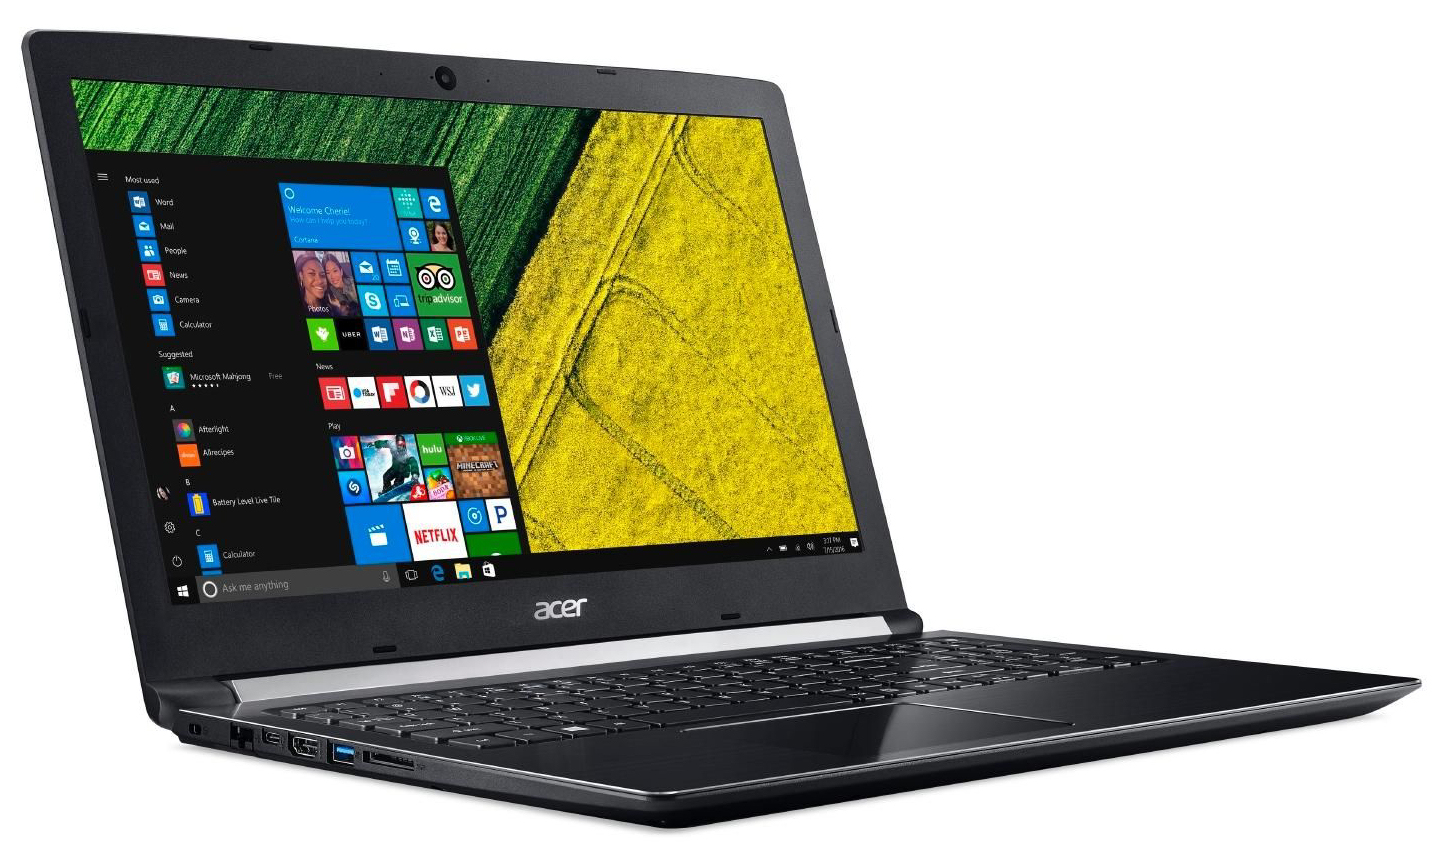 Acer Aspire 5 A515-51G (7200U, MX150, FHD) Laptop Review